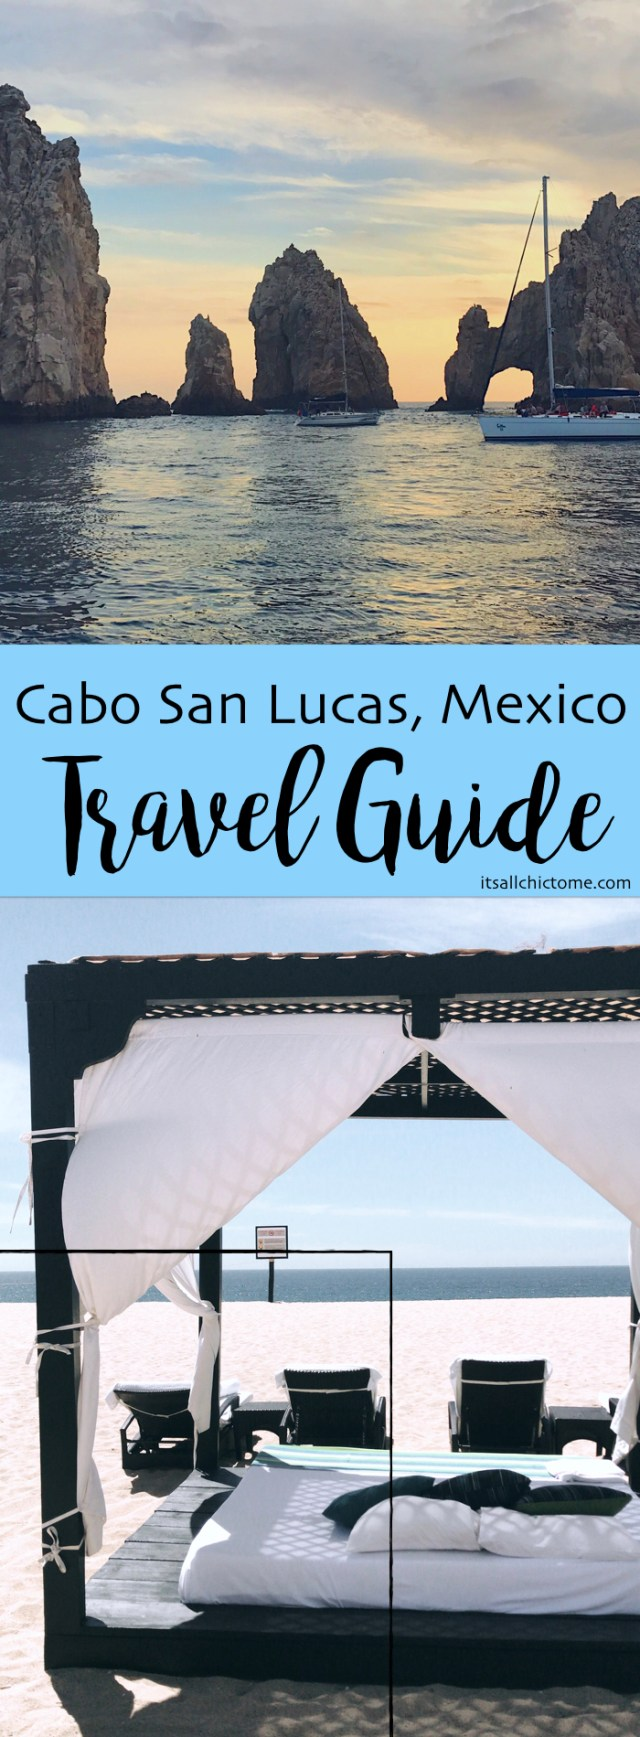 Cabo San Lucas Travel Guide